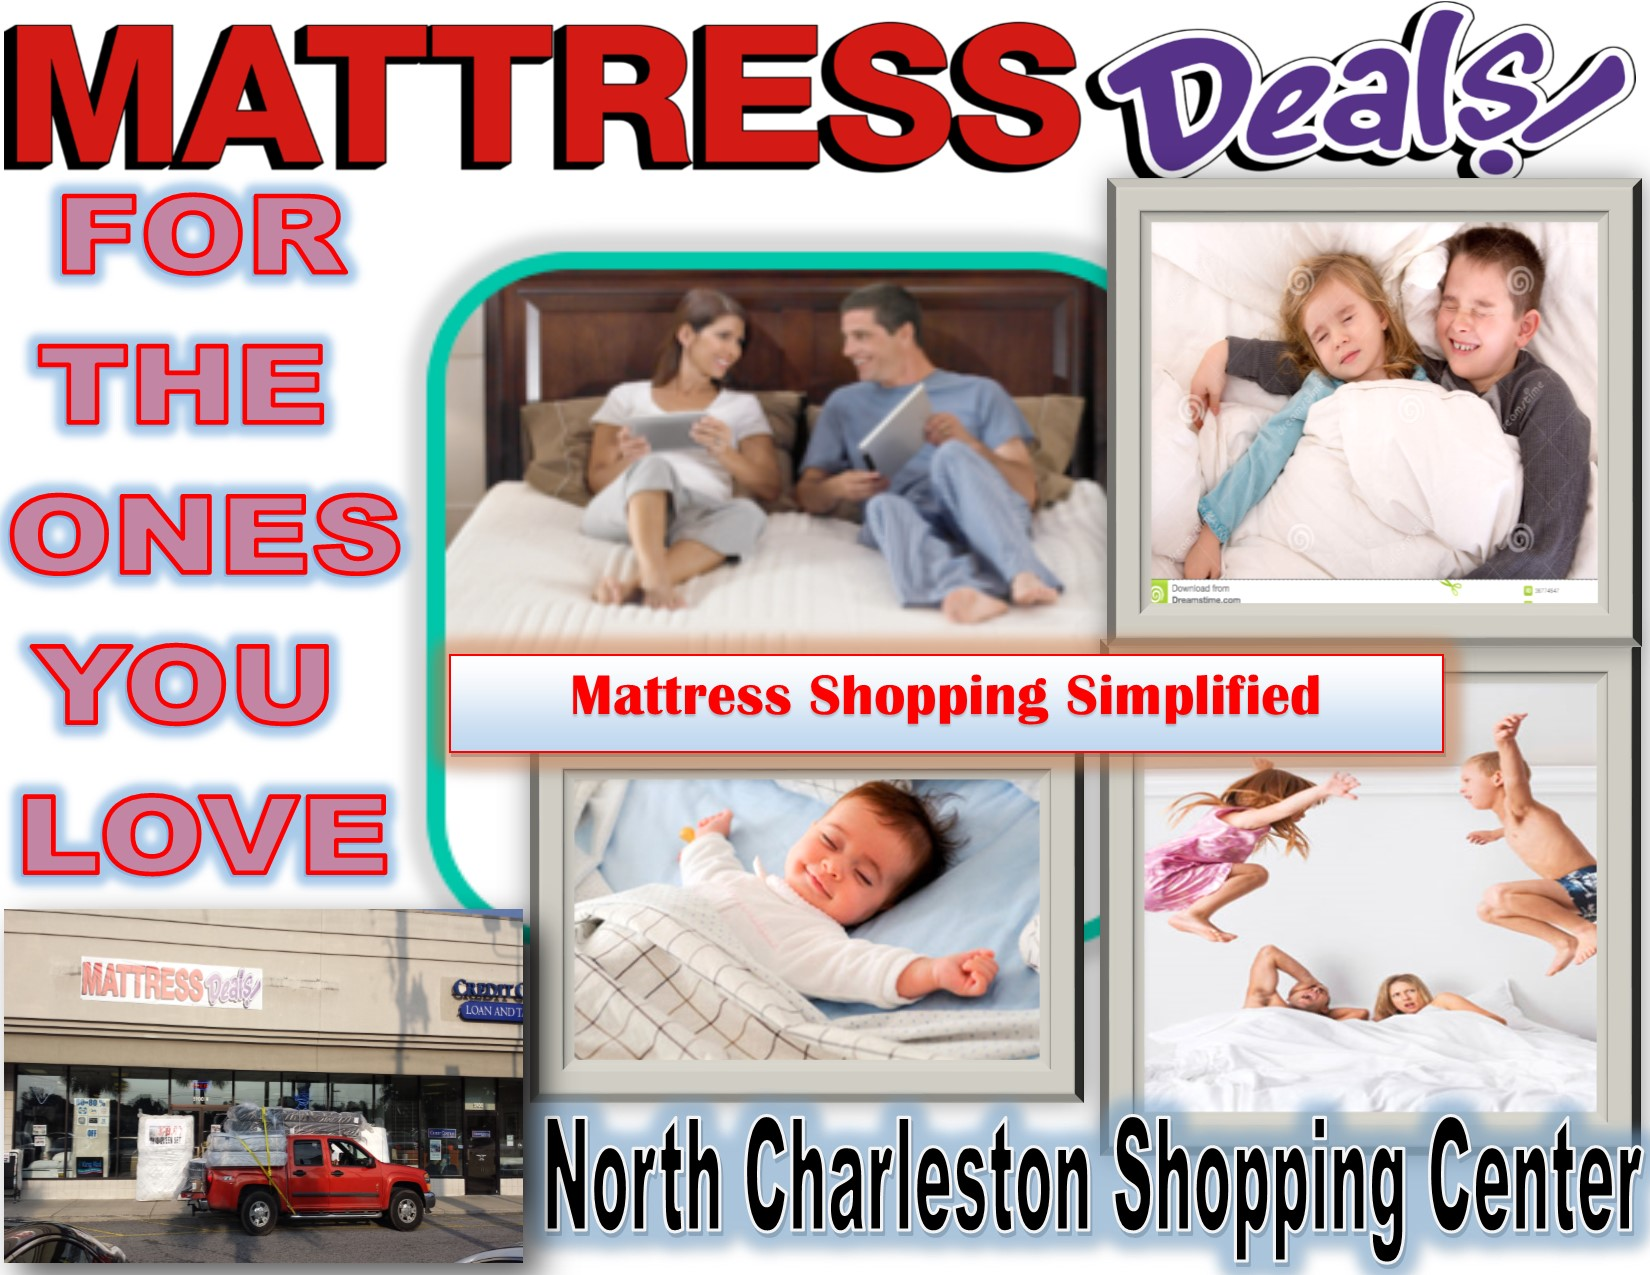 Mattress Deals image 96